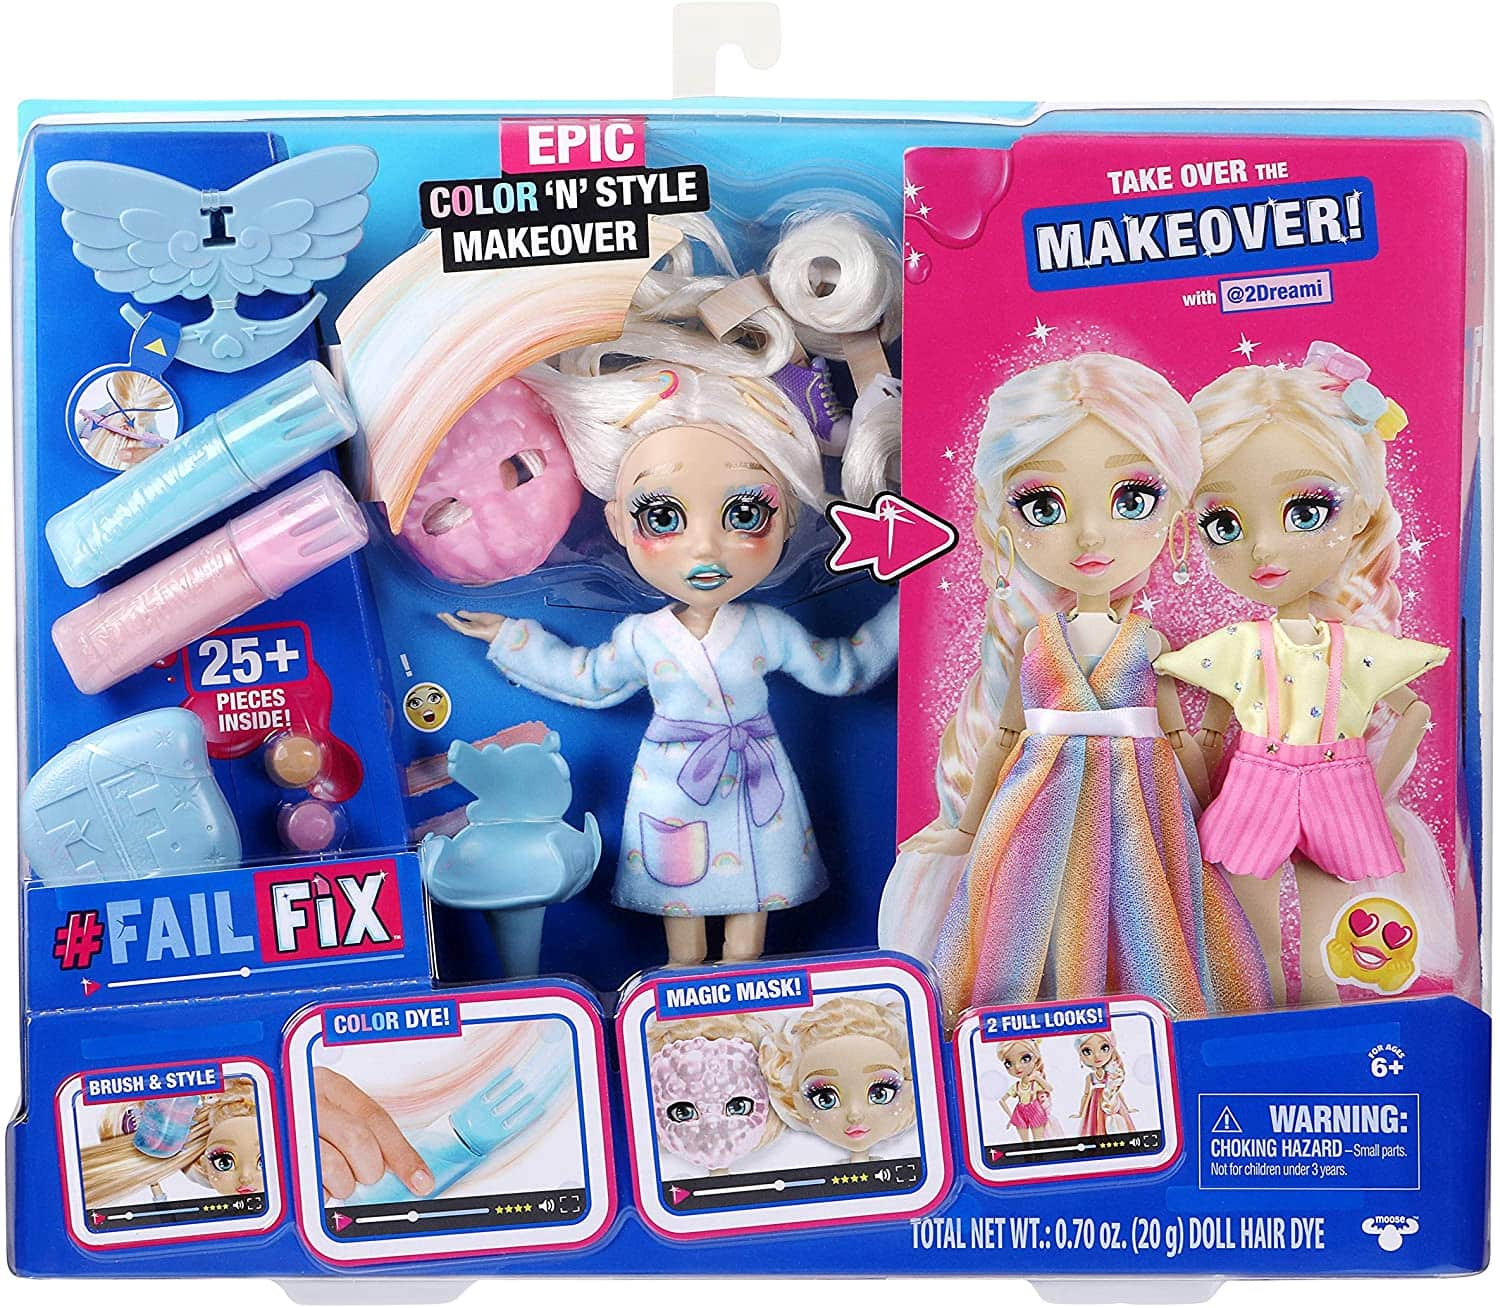 Failfix 2Dreami Epic Color 'N' Style Makeover Doll w/ 25+ Accessories $12.85 + Free Shipping w/ Amazon Prime or Orders $25+